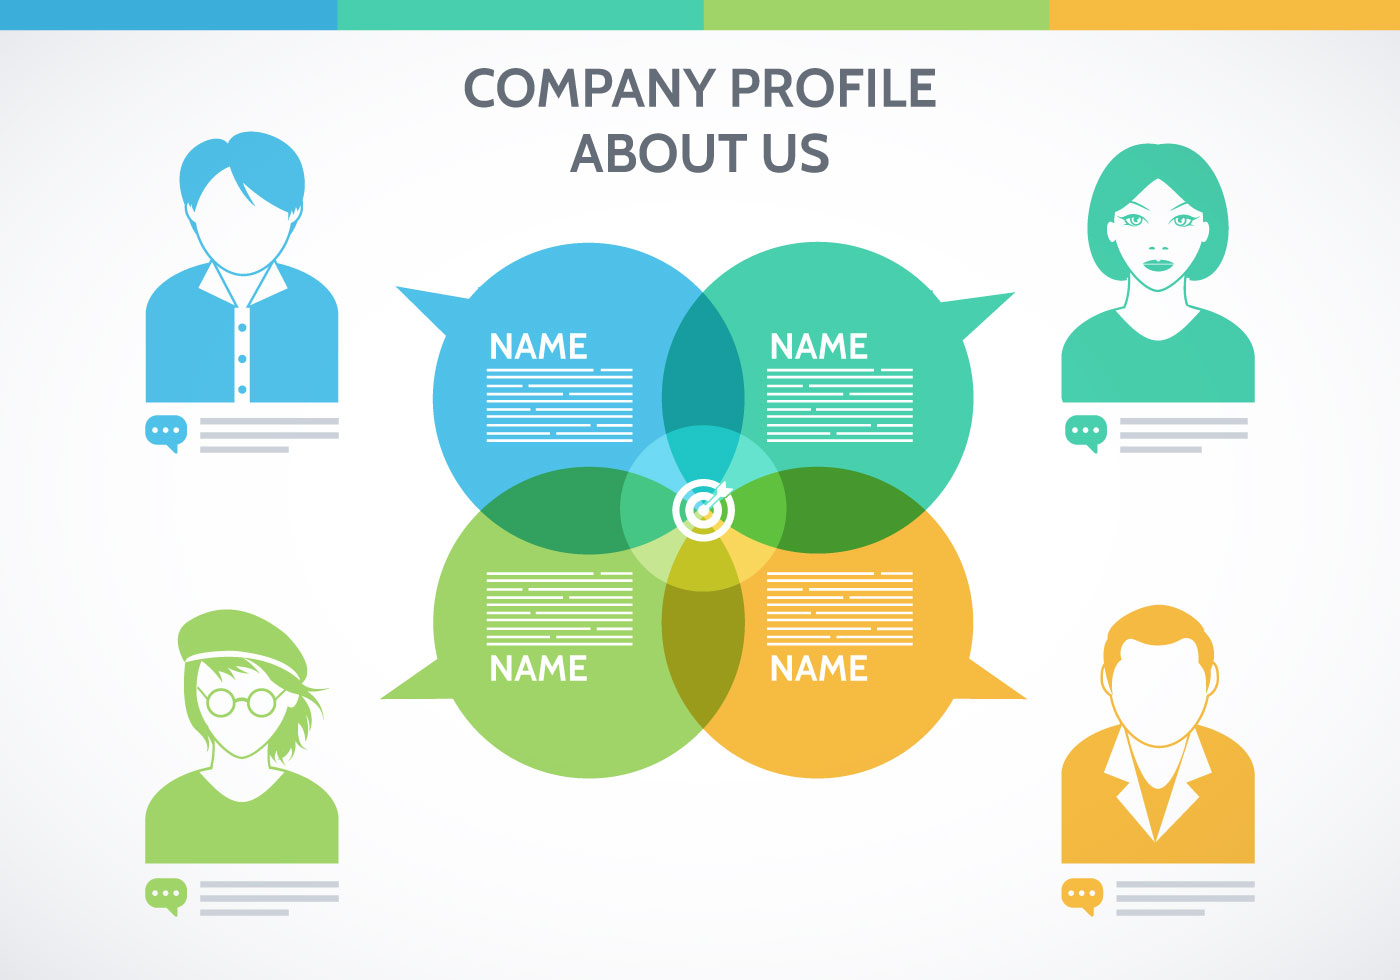 Company Profile Design 1278 Free Downloads – IT Company Profile Template